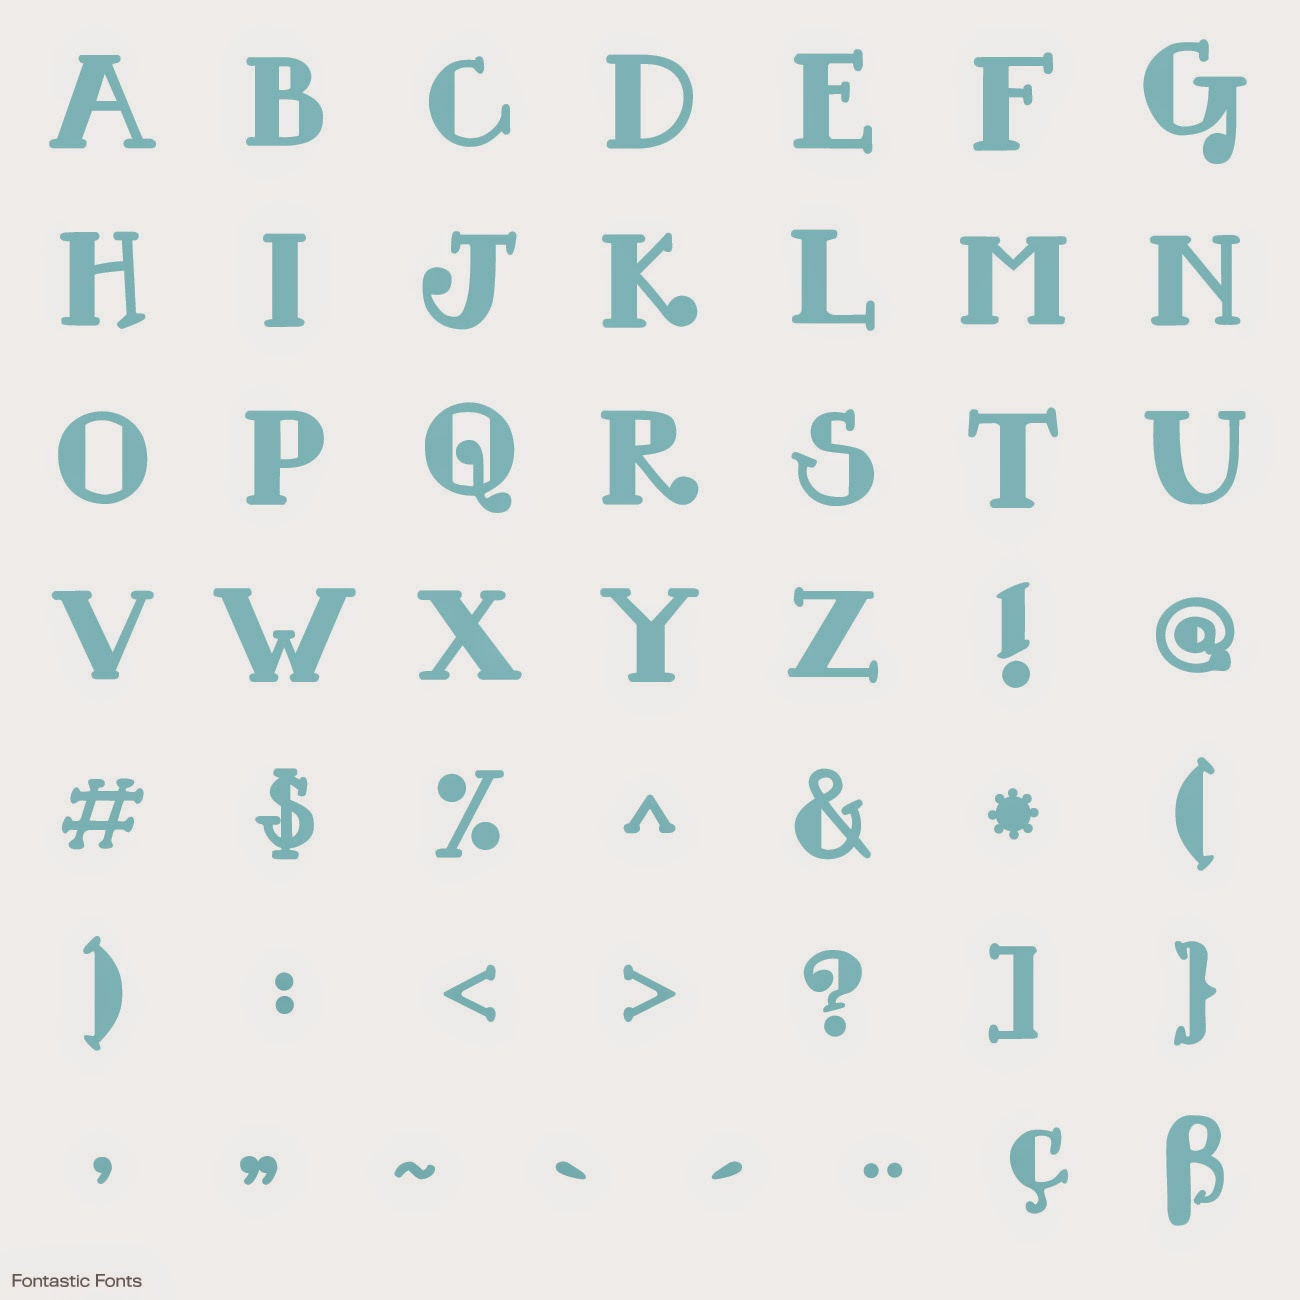 fonts chart Download free hindi kruti dev 010 font shortcut key chart fonts for windows and mac browse by popularity, category or alphabetical listing.